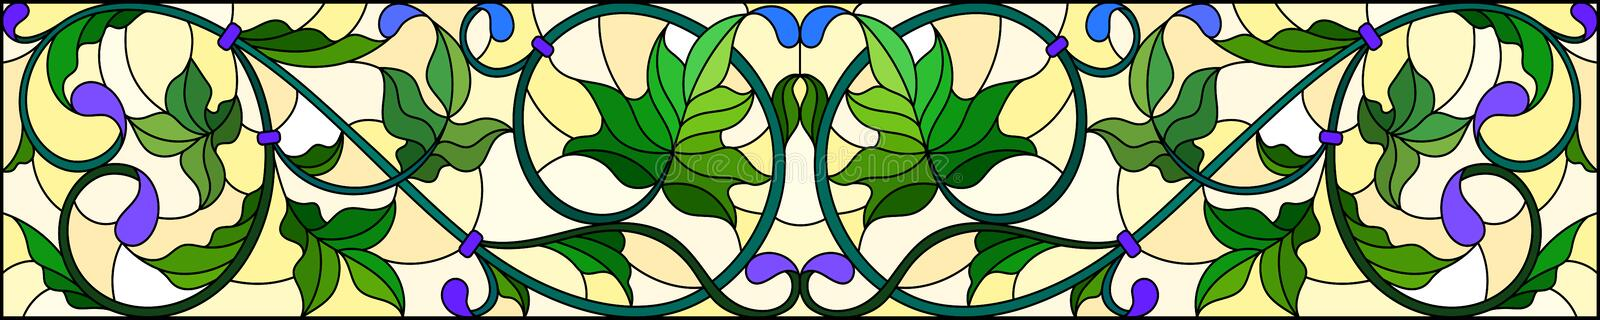 Stained glass illustration with abstract green swirls and leaves on a yellow background,horizontal orientation. Illustration in stained glass style with abstract royalty free illustration